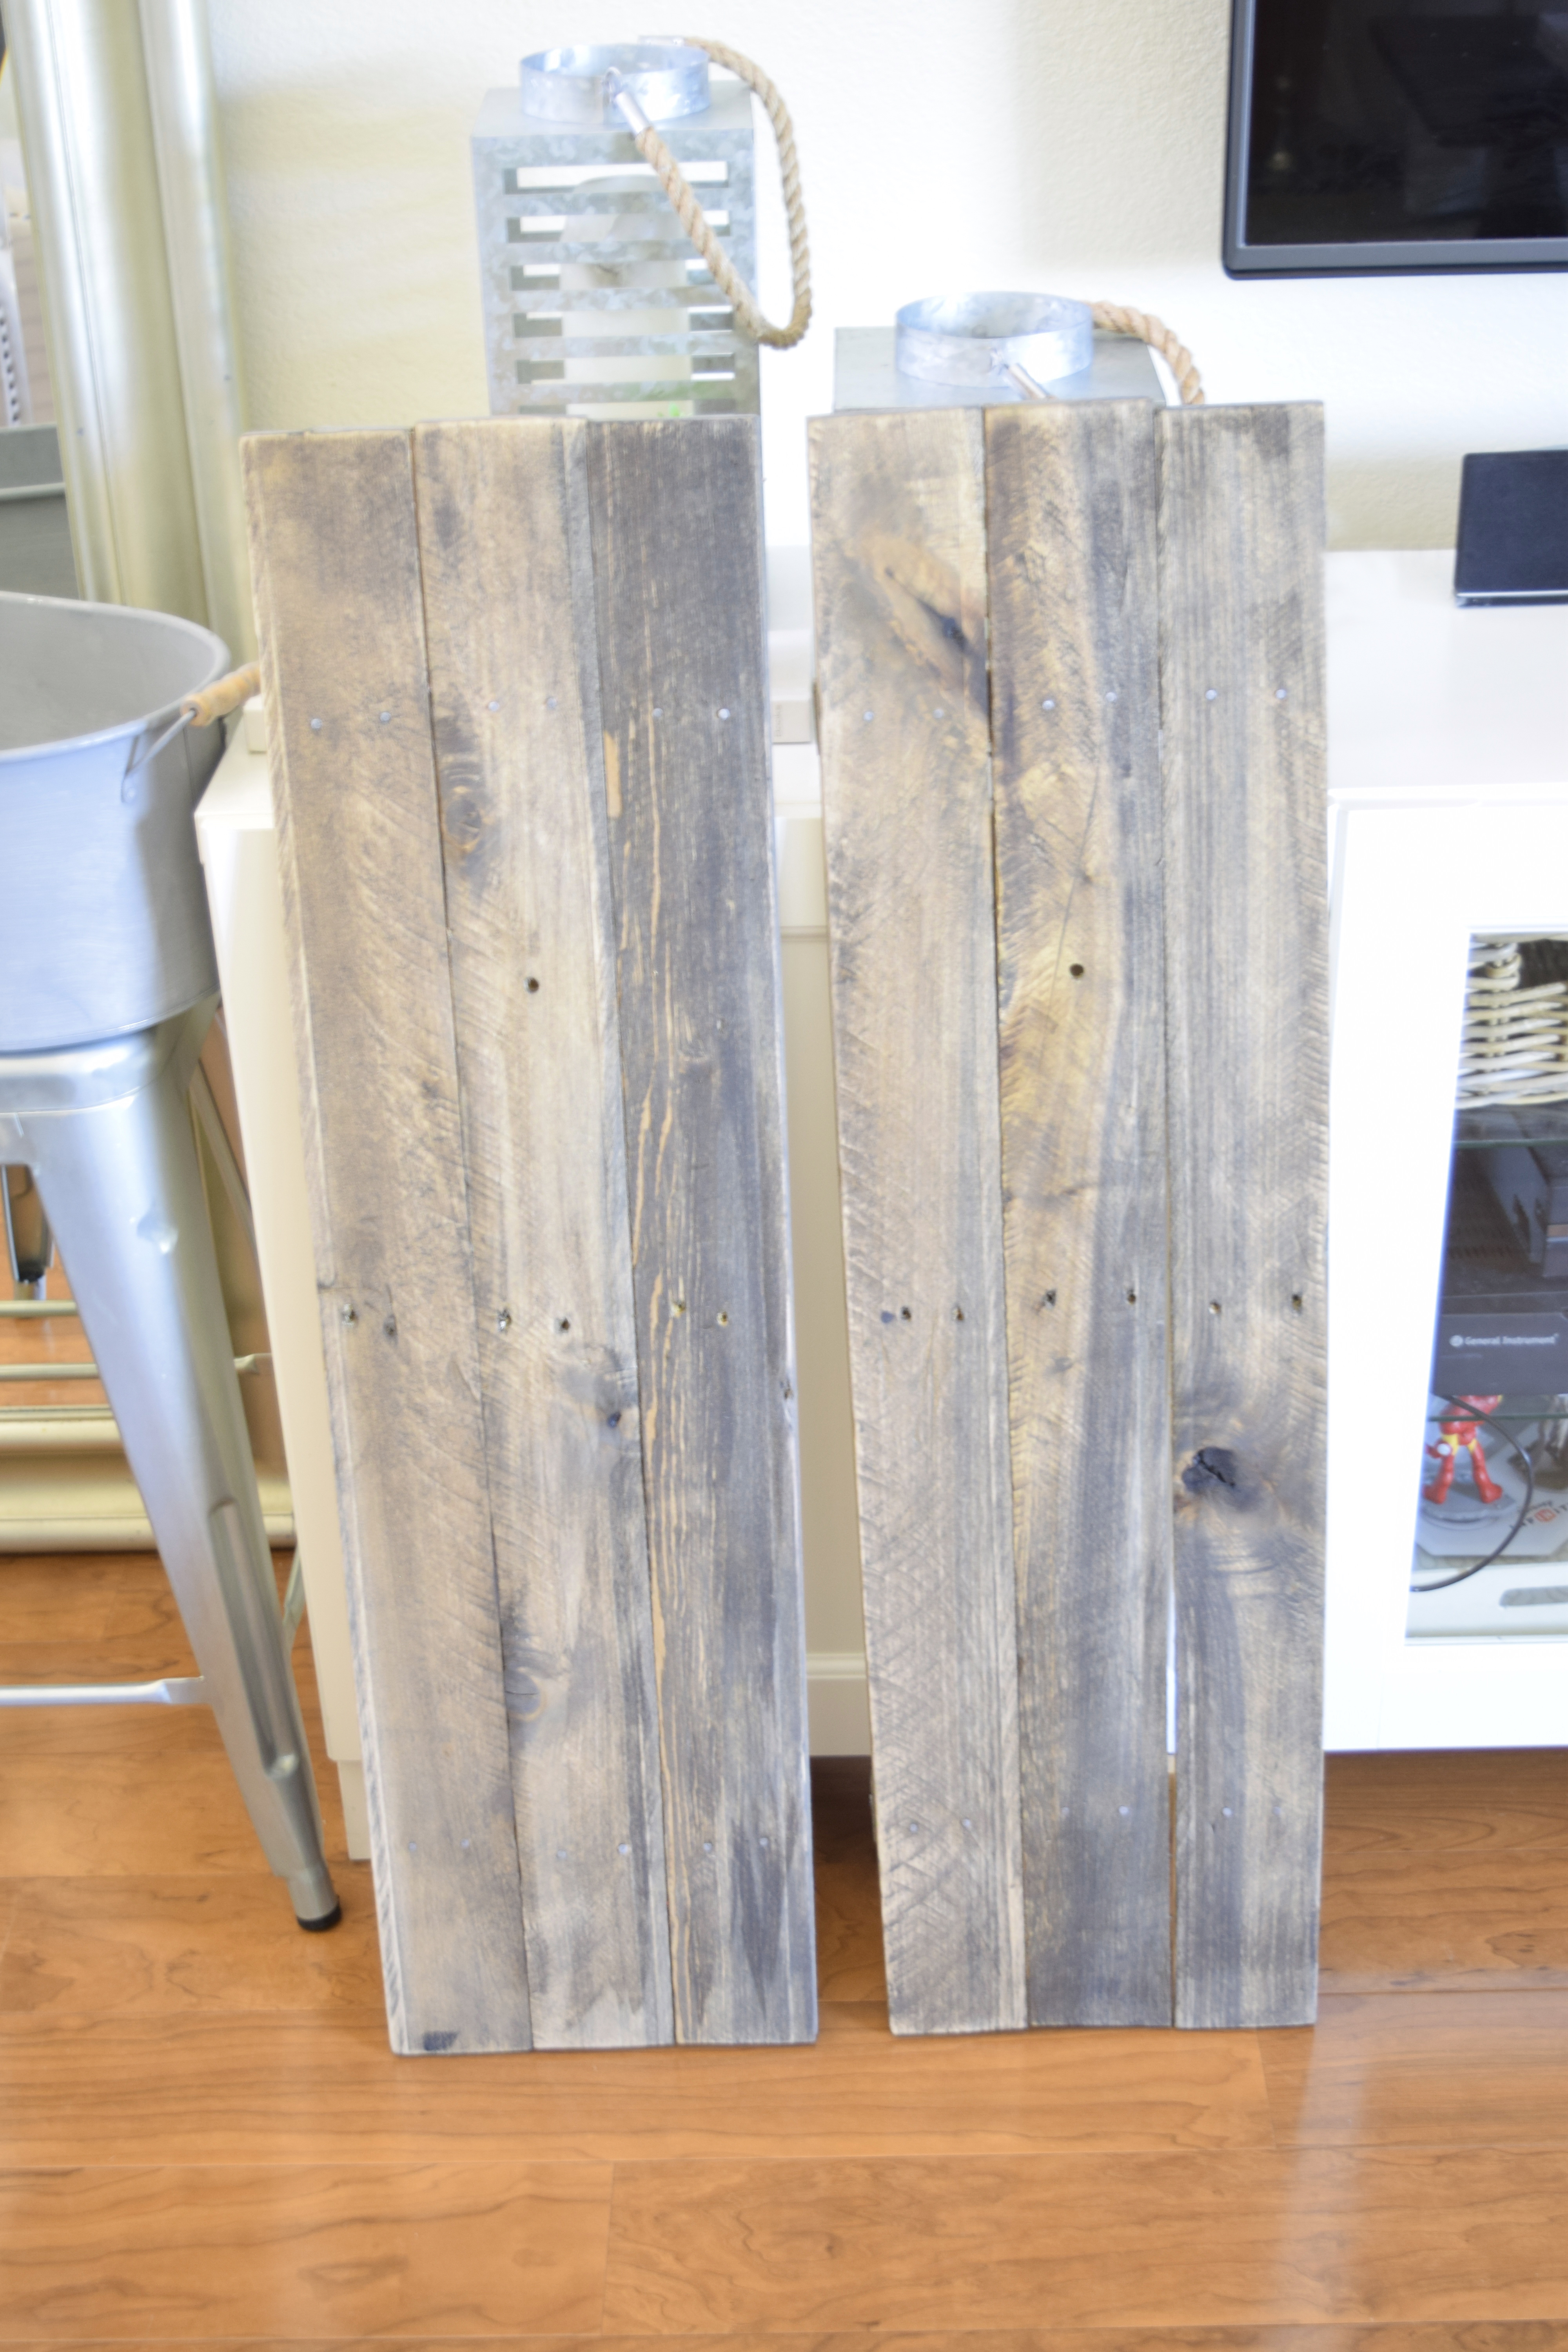 here, the pallets are stained, holes drilled, ready to apply wall lamp